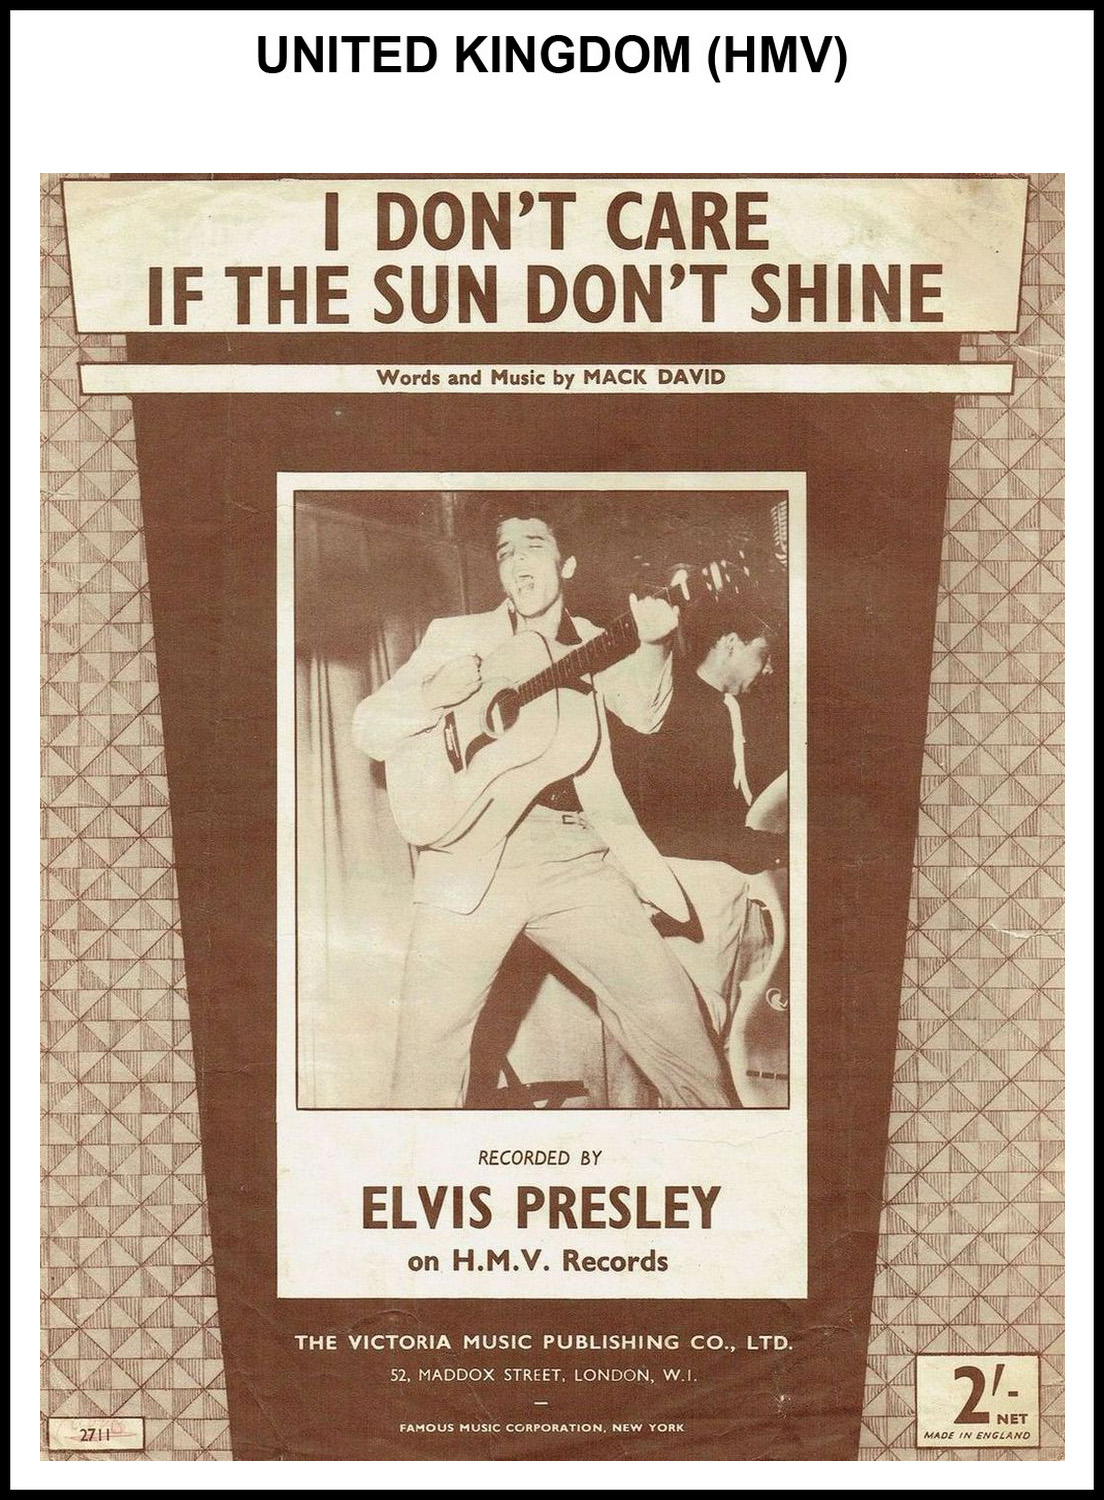 1954 - I Don't Care If The Sun Don't Shine (UK, HMV) 1 (CHRIS GILES COLLECTION)